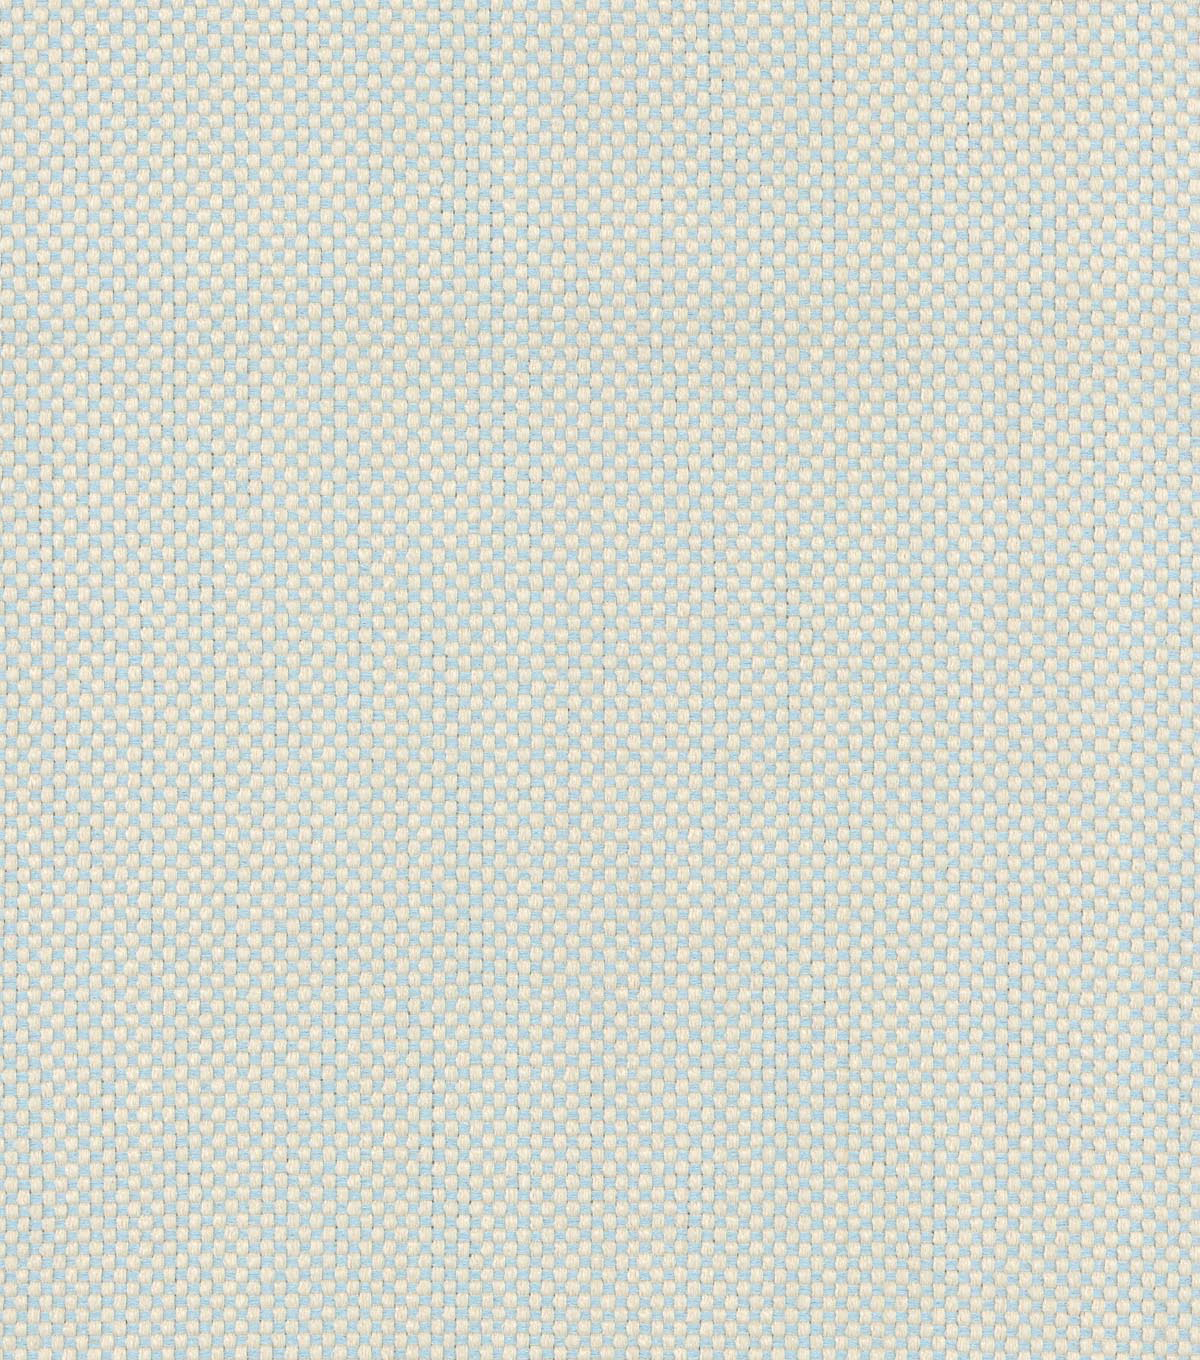 Home Decor 8\u0022x8\u0022 Swatch Fabric-Waverly SoHo Solid Haze